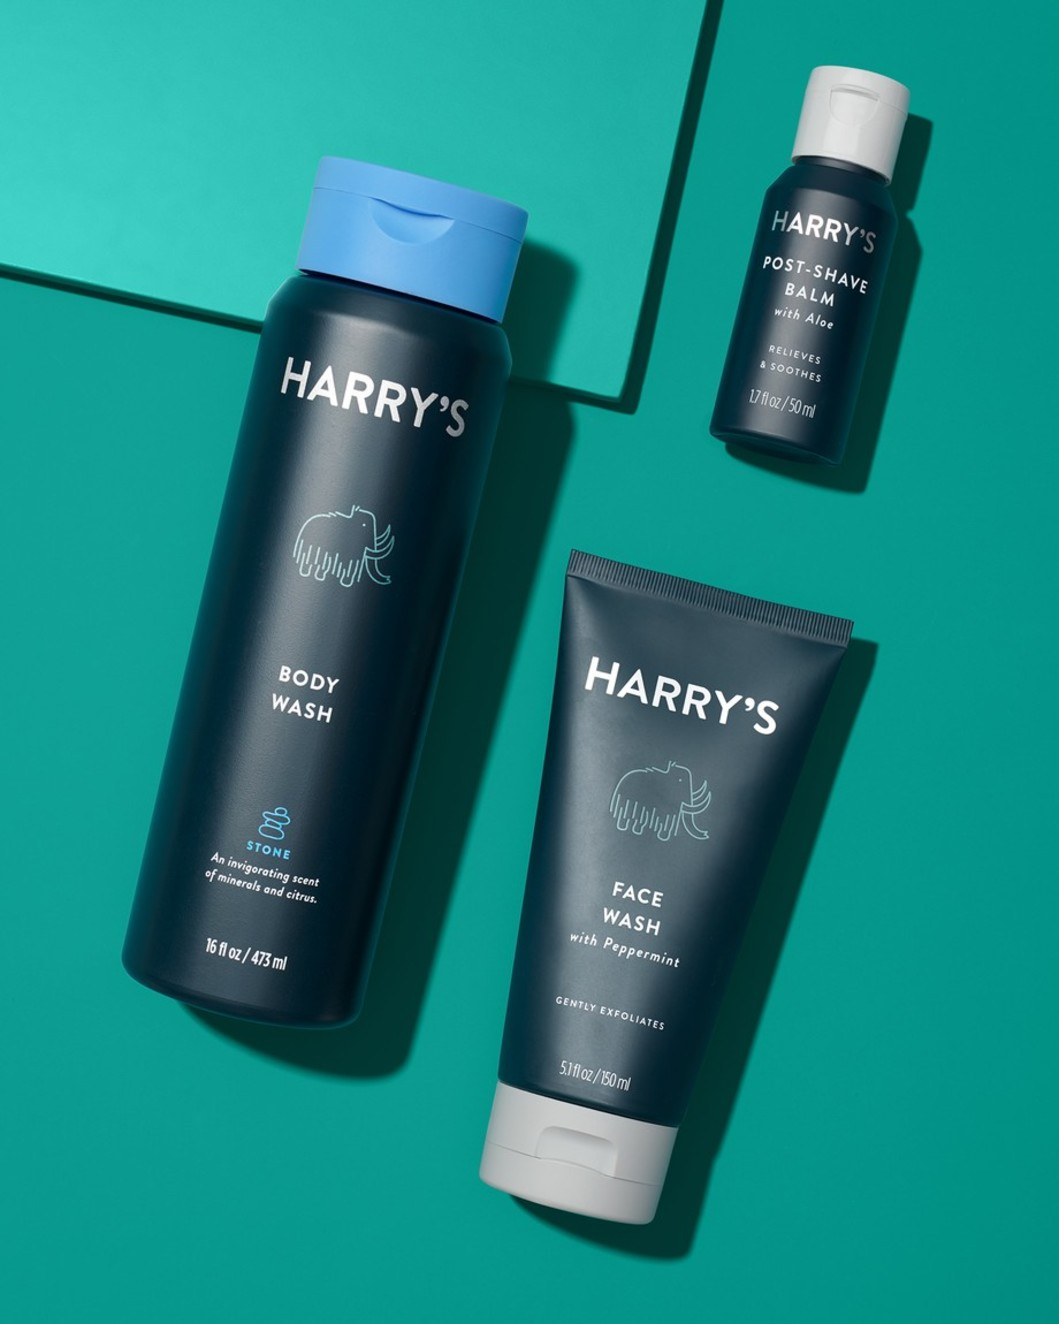 Stone Body Wash, Face Wash and Post-Shave Balm